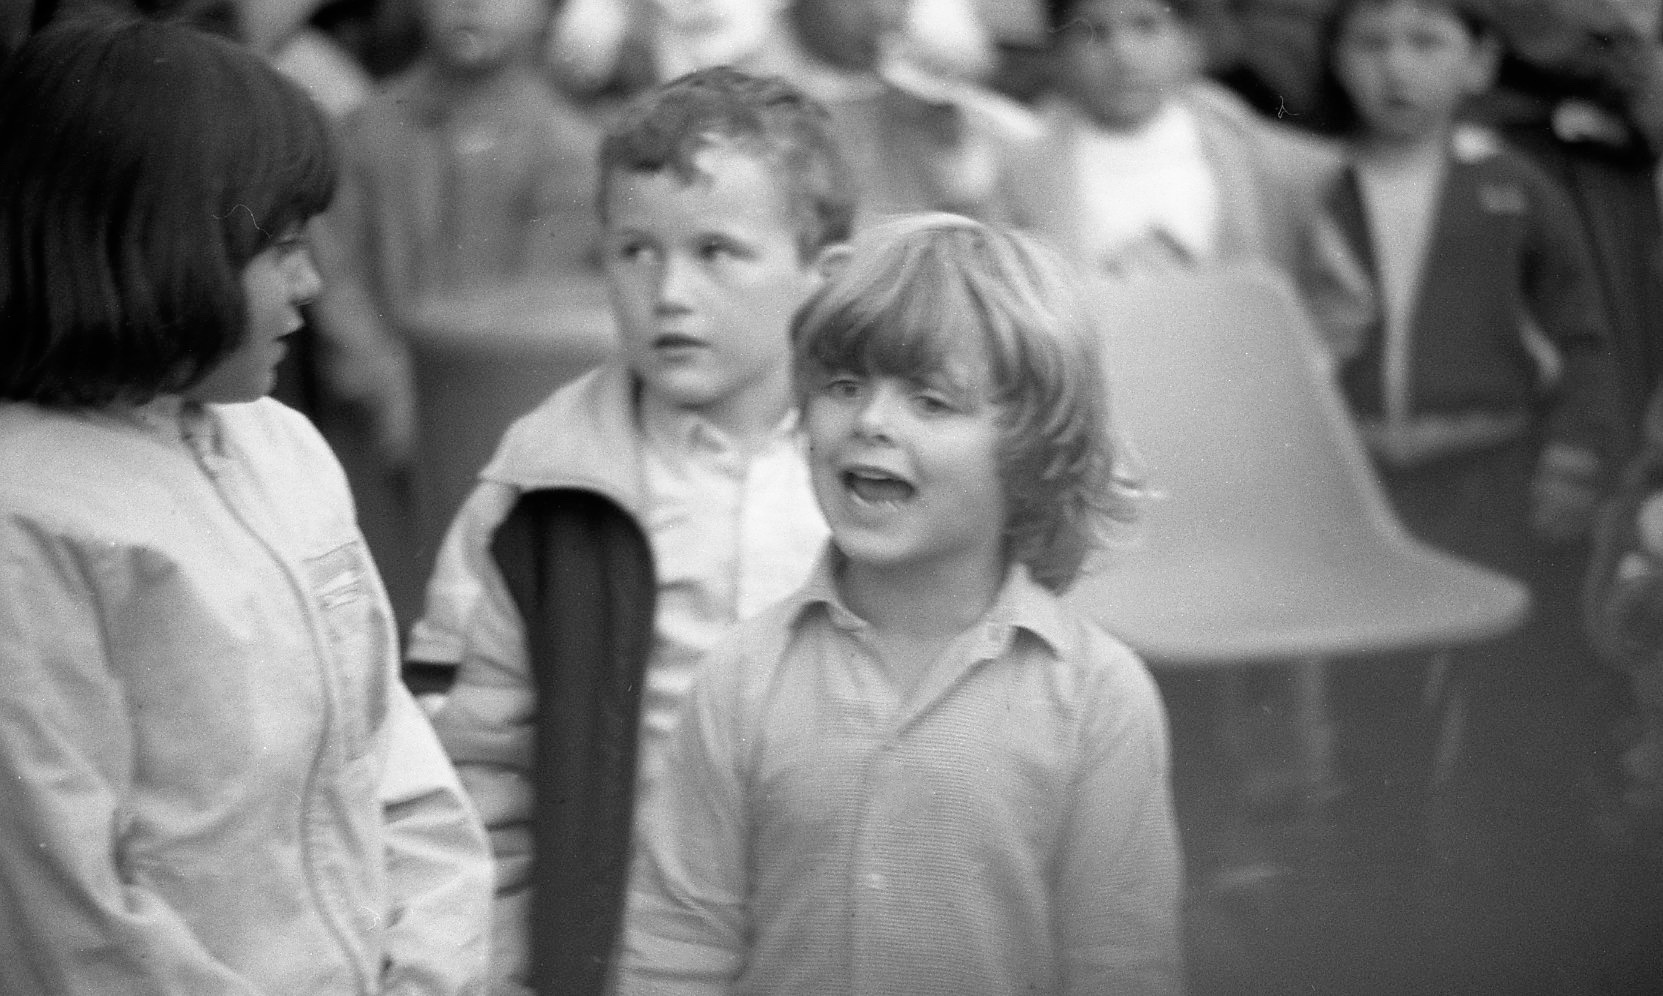 Sam in Punch and Judy crowd 1985